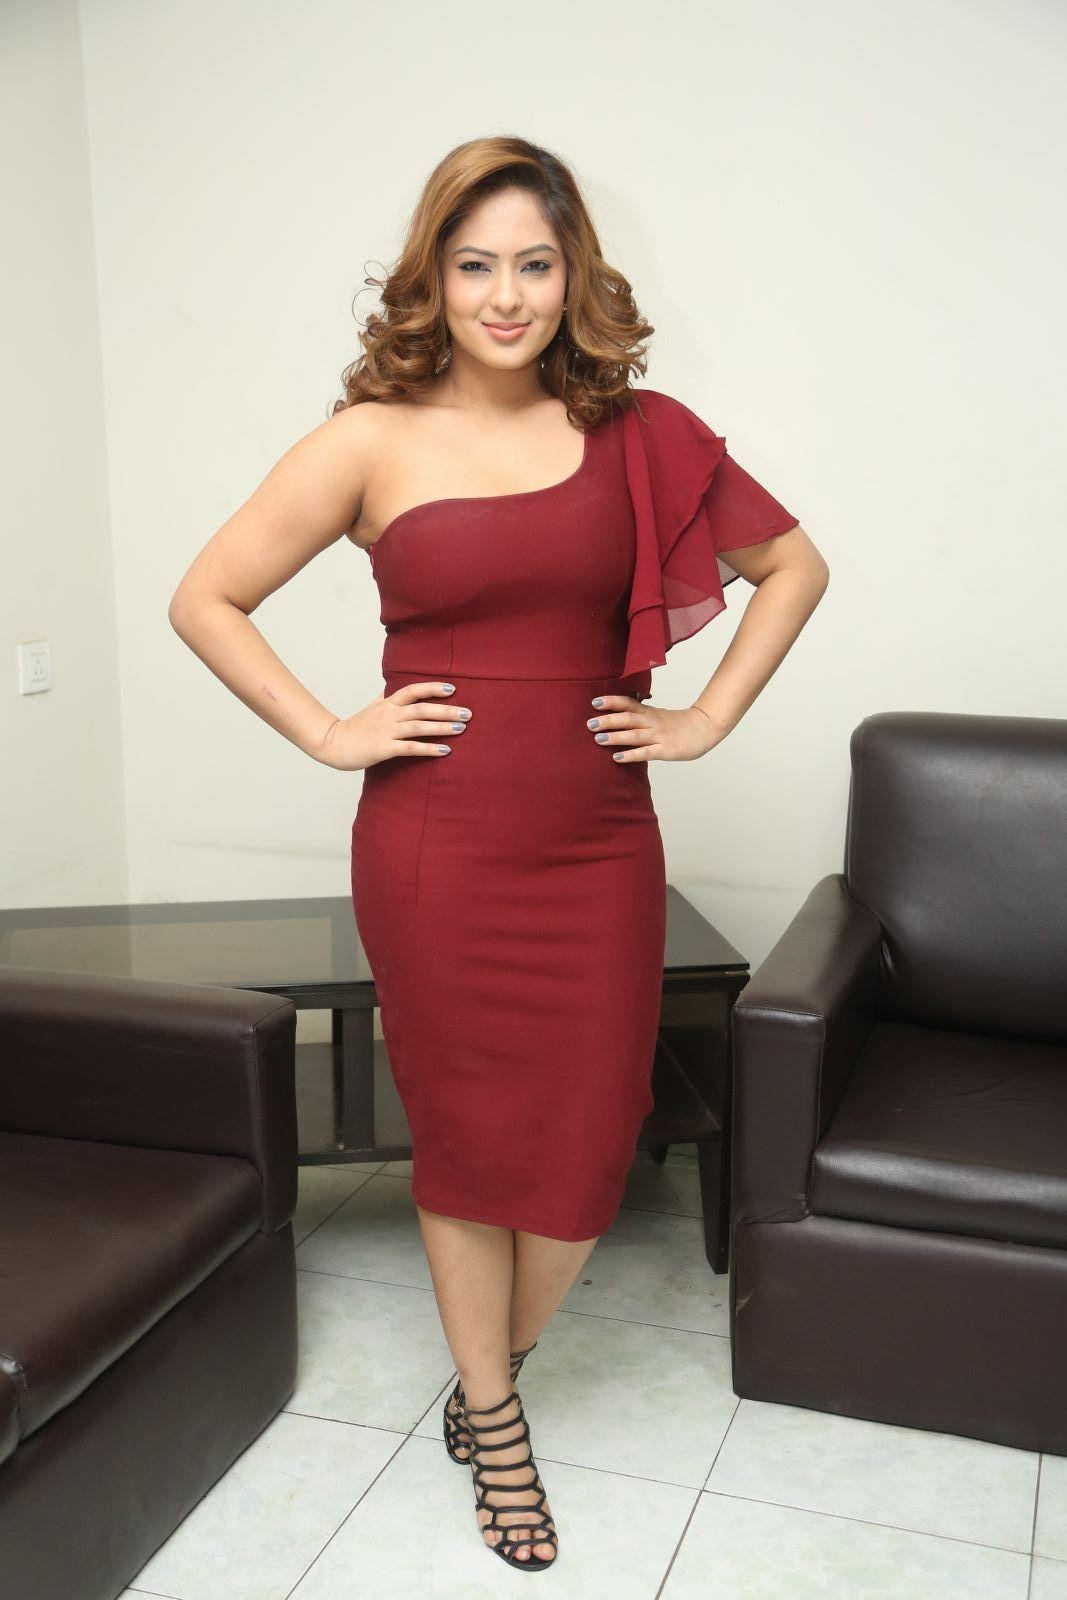 Latest Wallpapers | Cool Pictures: Nikesha Patel Hot